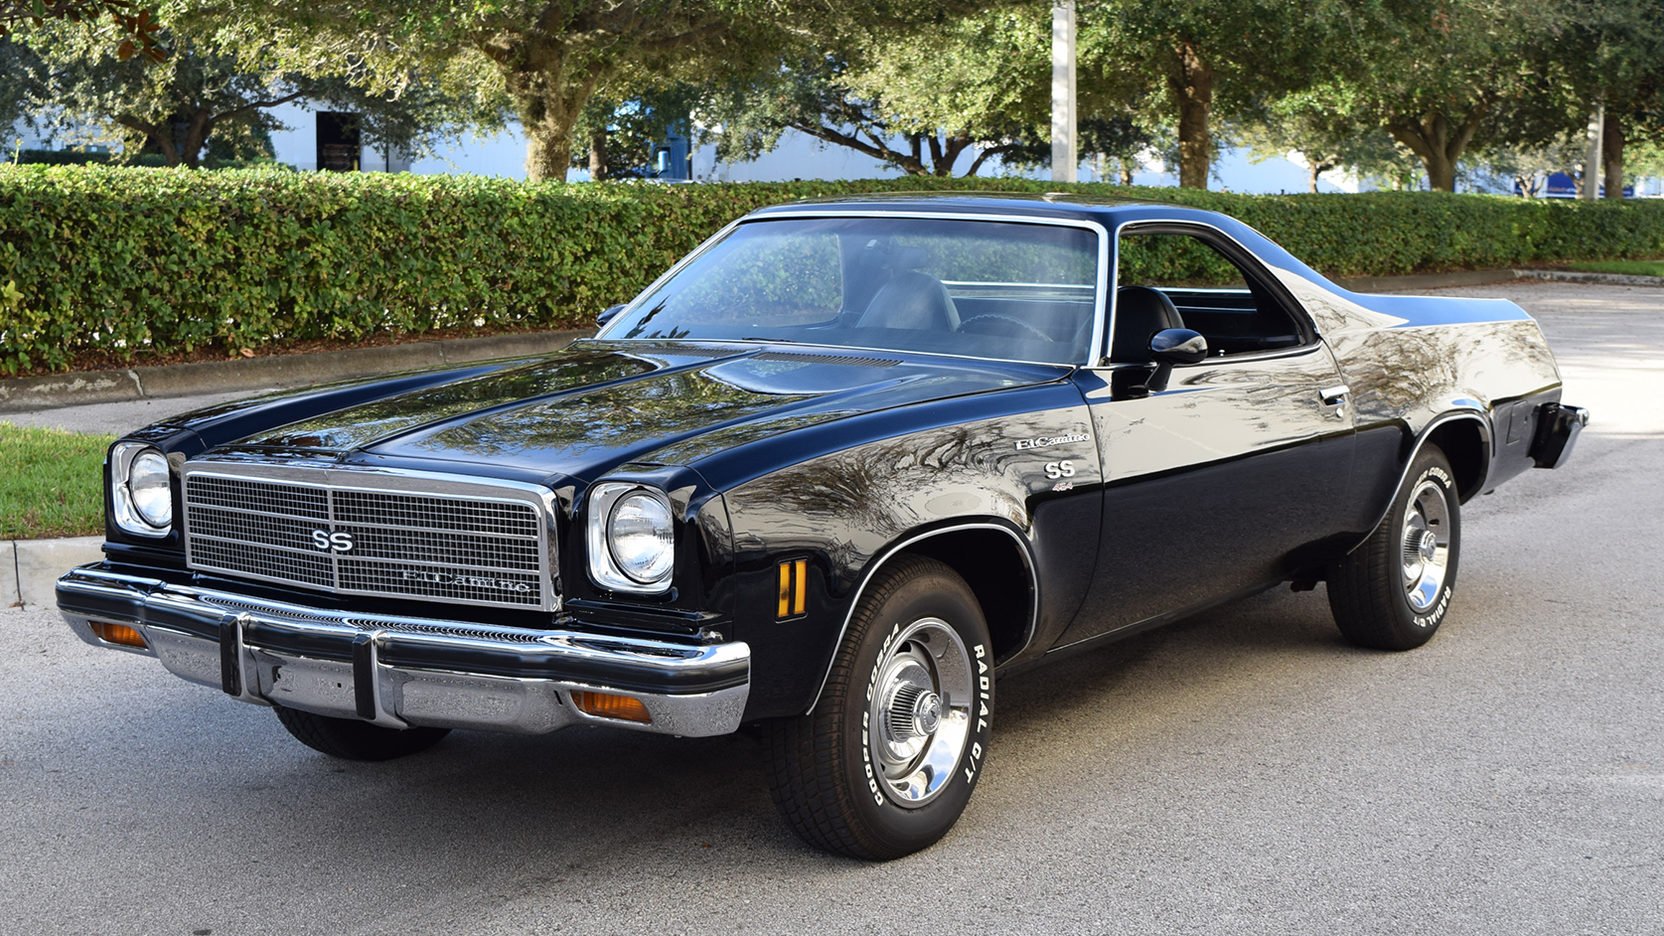 hight resolution of 1974 chevrolet el camino ss 1 full screen